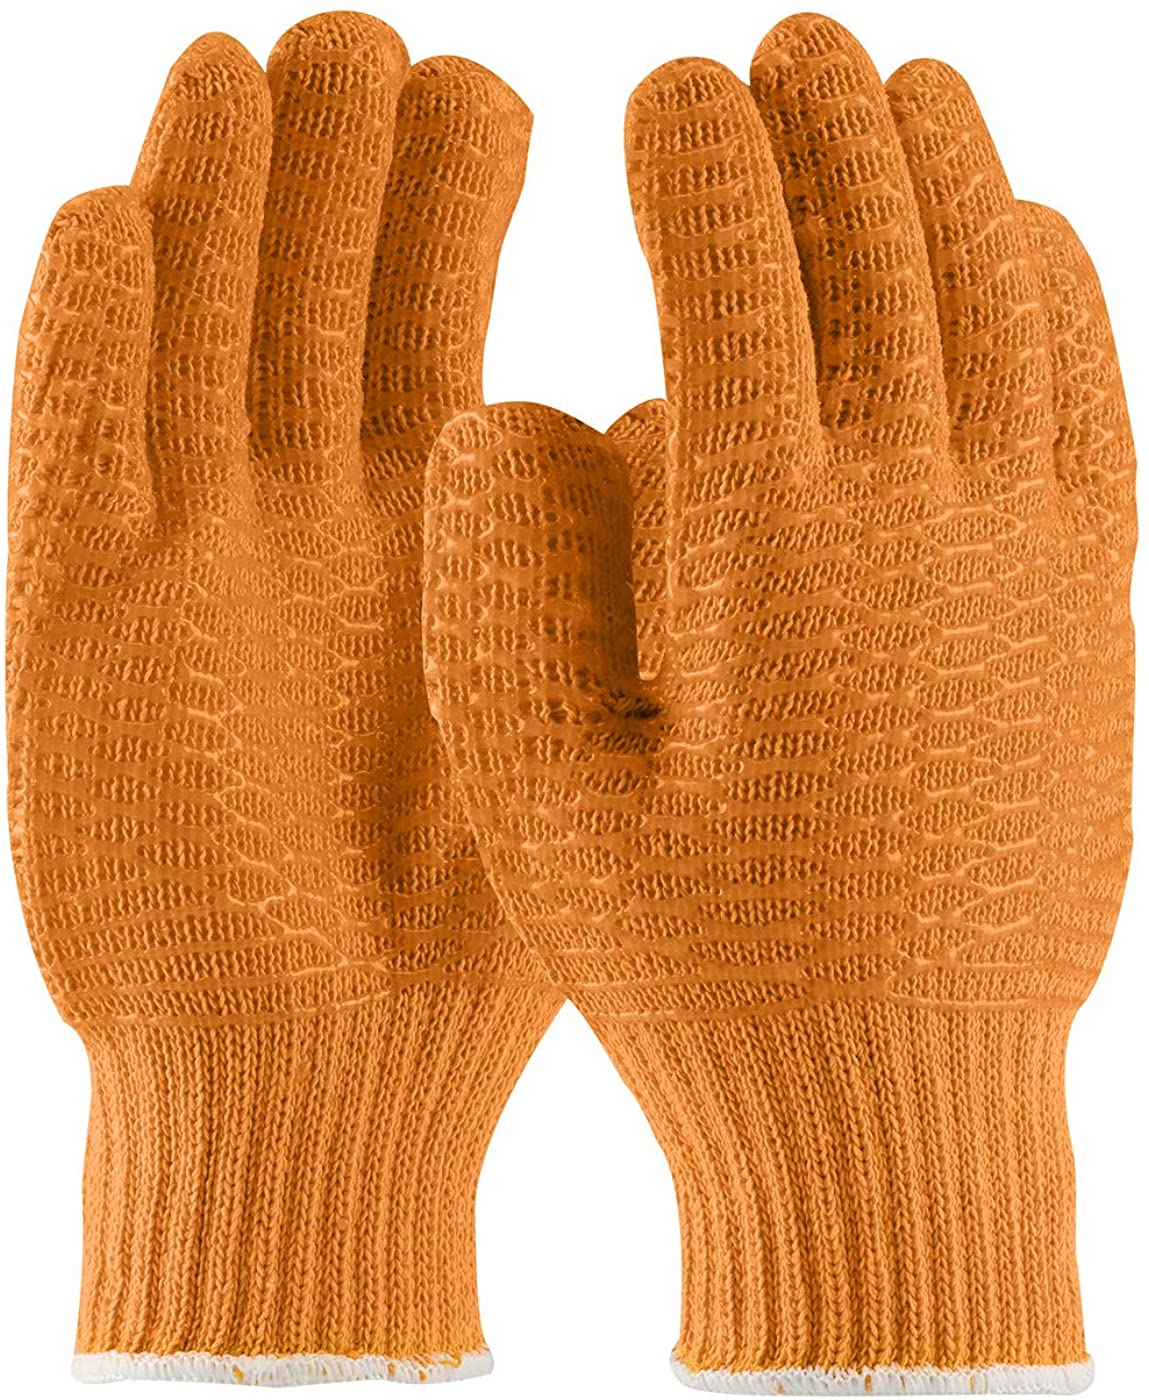 Pack of 24 Knit Glove Liners S size. Orange Protective String Knit Gloves. Clear PVC Honeycomb Finish. Knitted Cotton Polyester Gloves for General. Not for Food Handling. Comfortable fit. Wholesale.